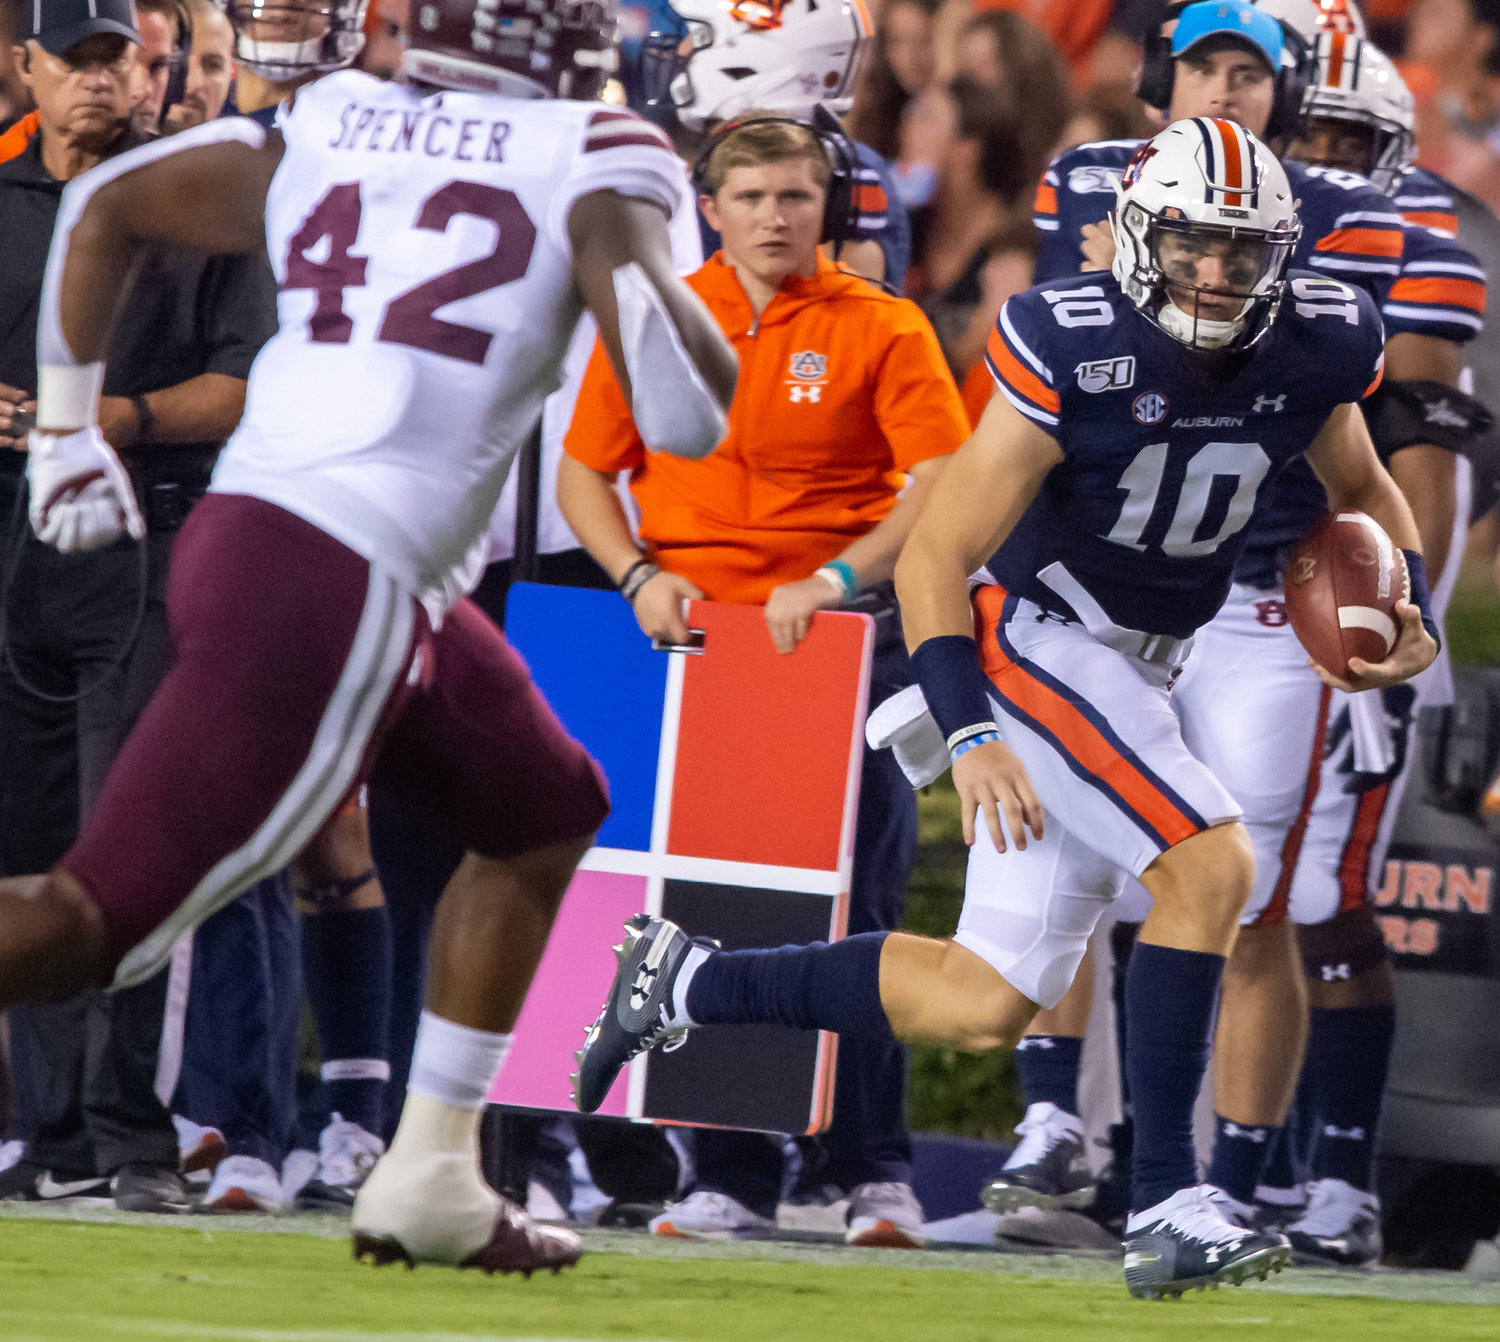 Auburn Tigers quarterback Bo Nix (10) runs during the first half of Saturday's game, at Jordan-Hare Stadium in Auburn.